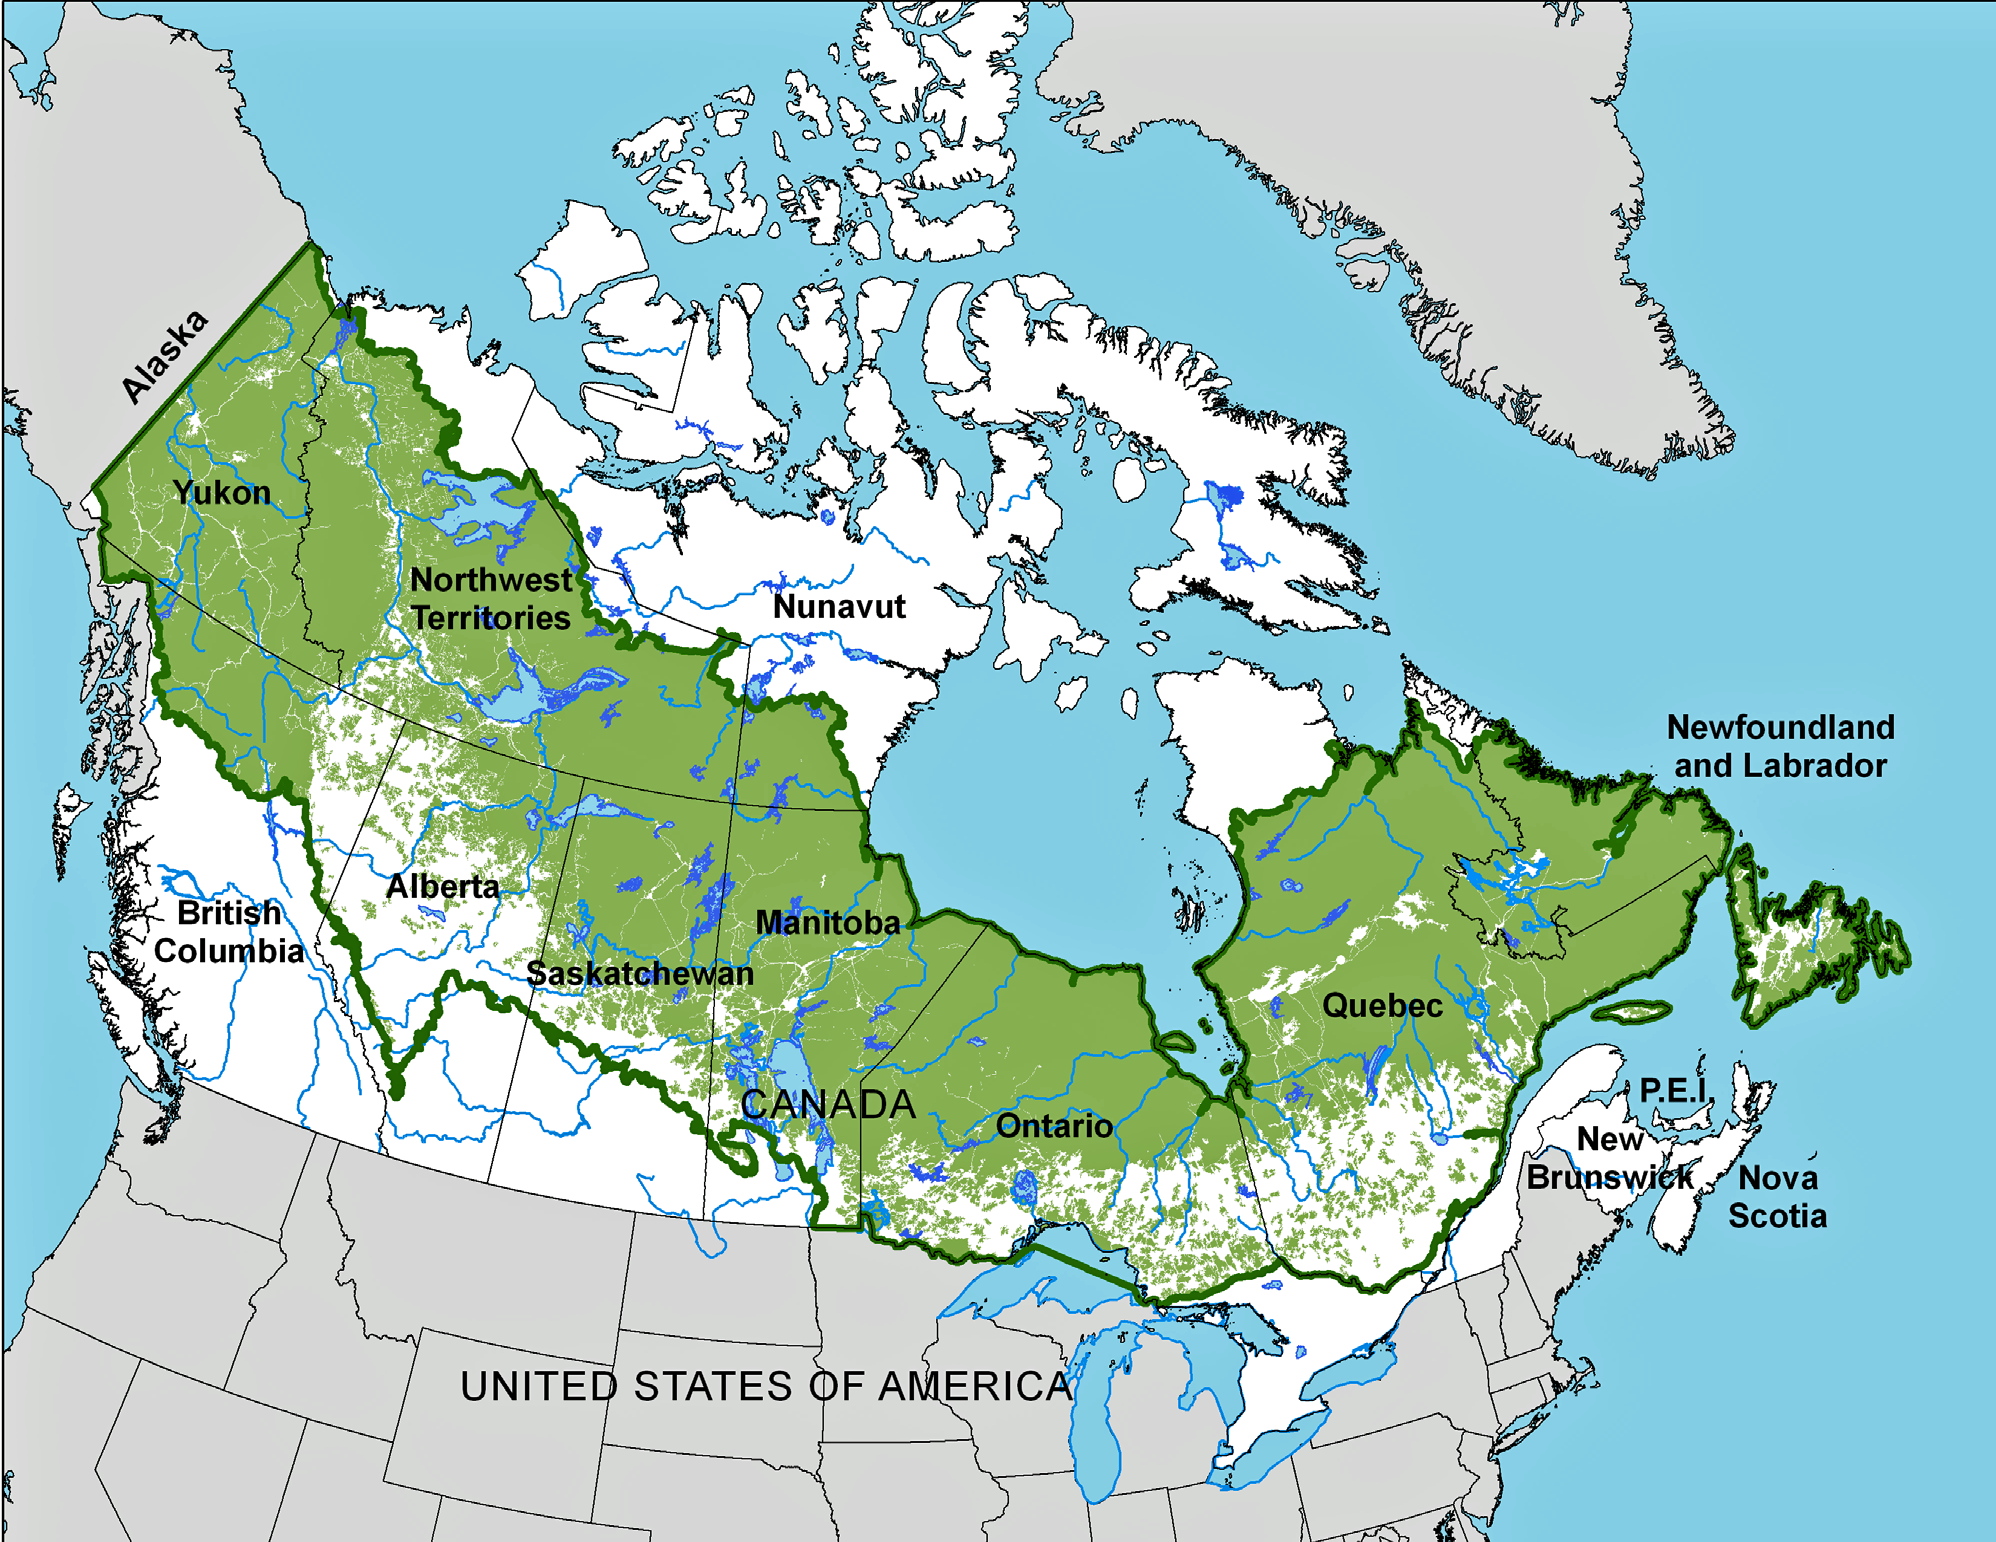 Map is the same as previous, with a belt of white creeping in at the south end of the belt, signifying loss of forest for farming and development.